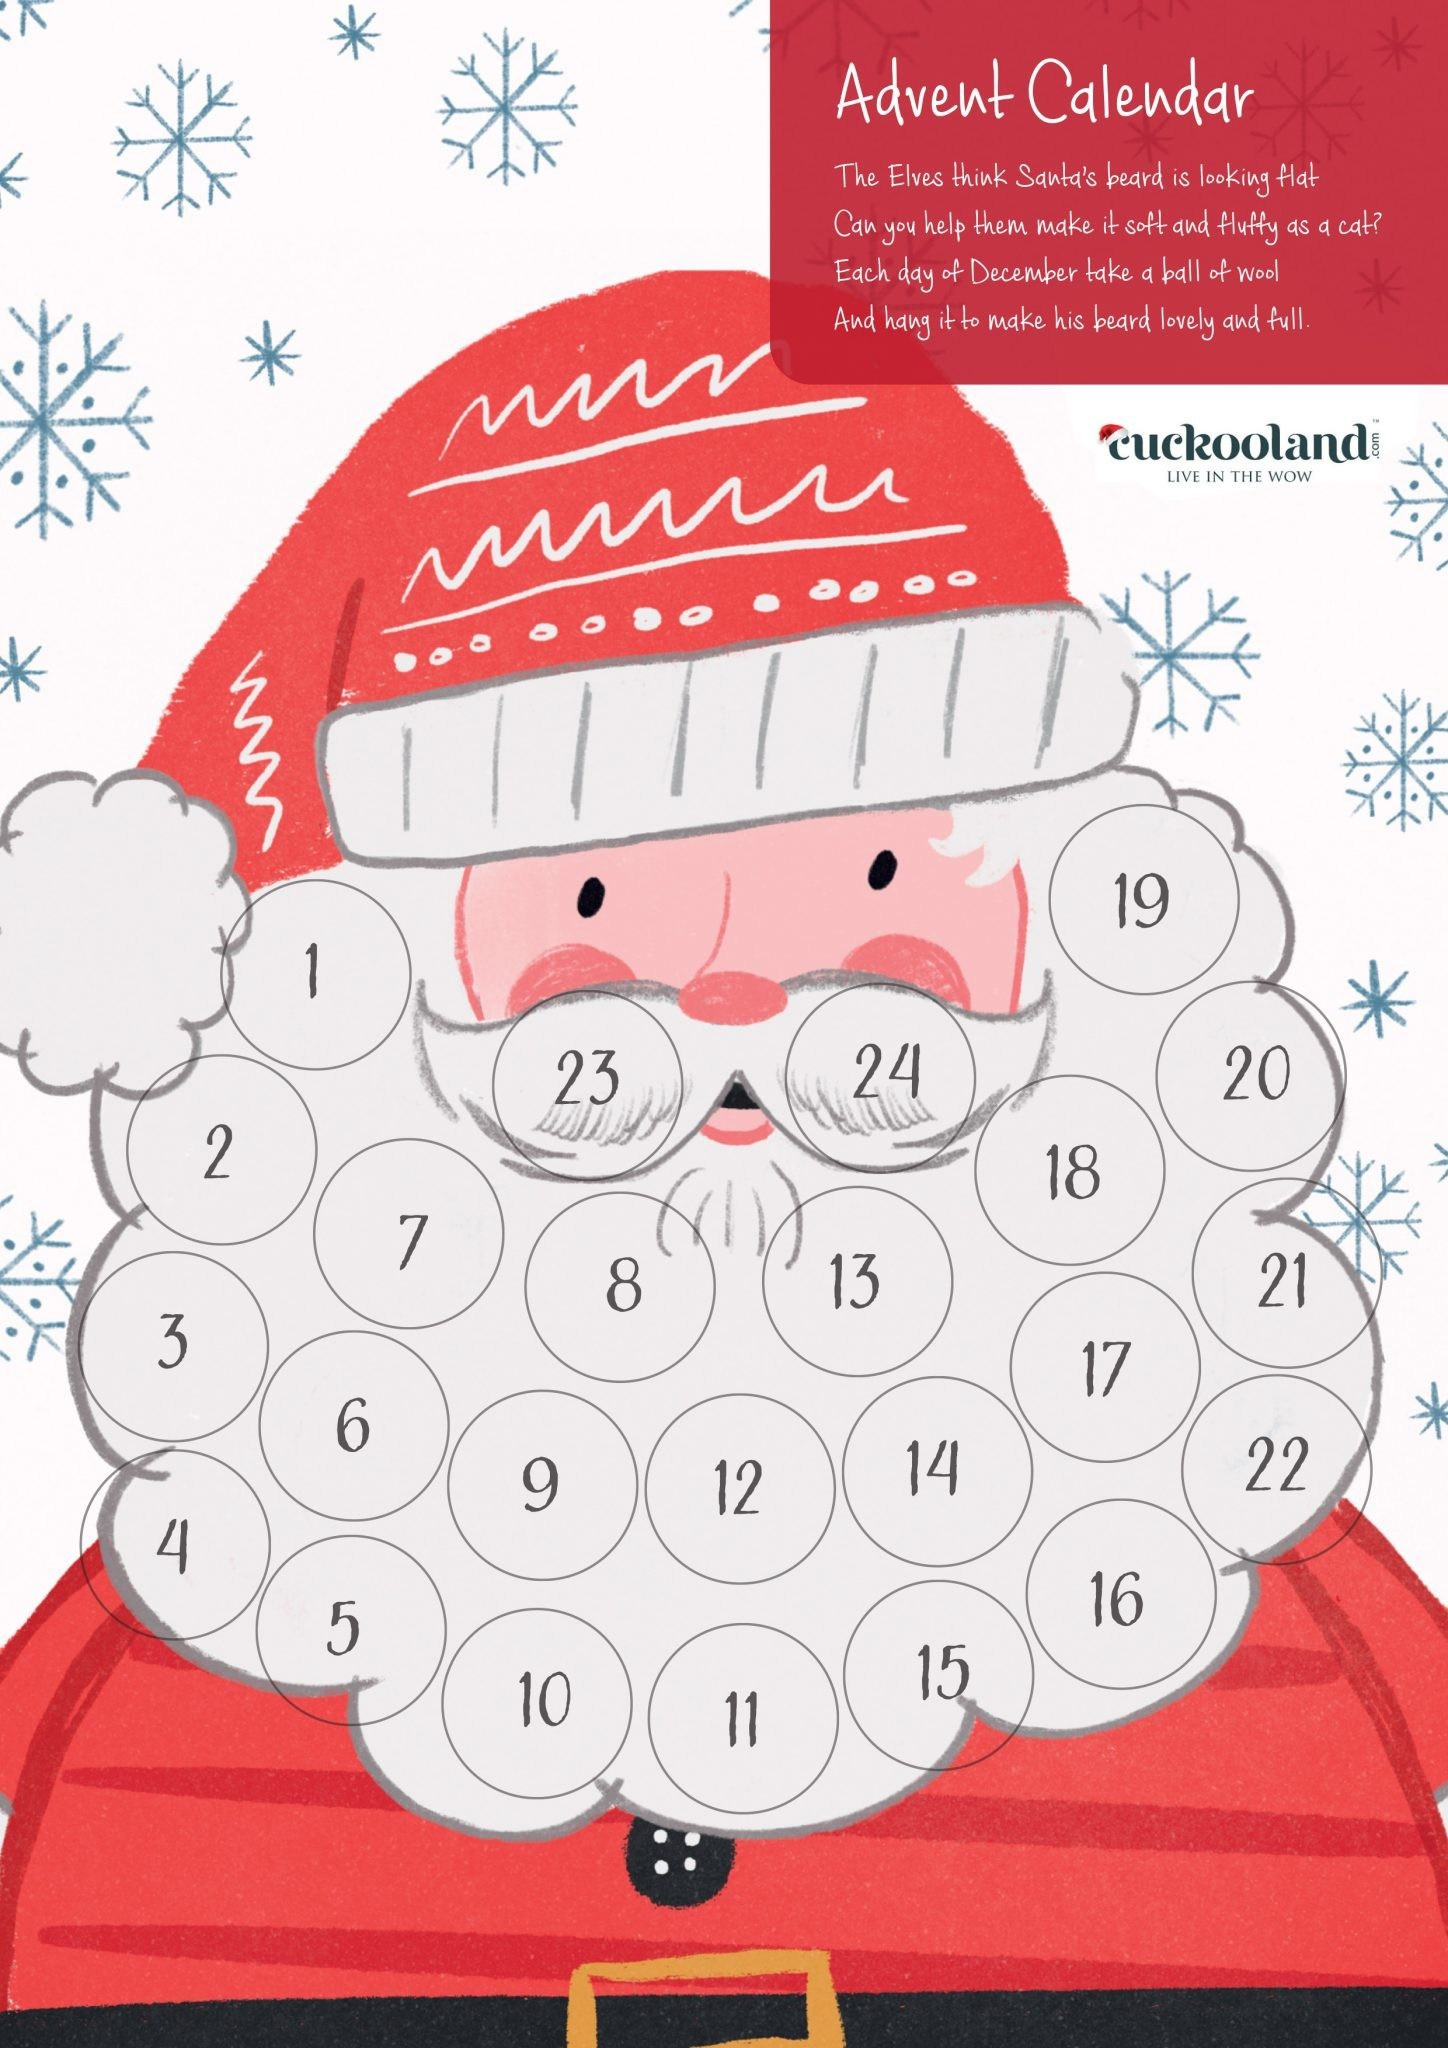 Printable Advent Calendar by Cuckooland